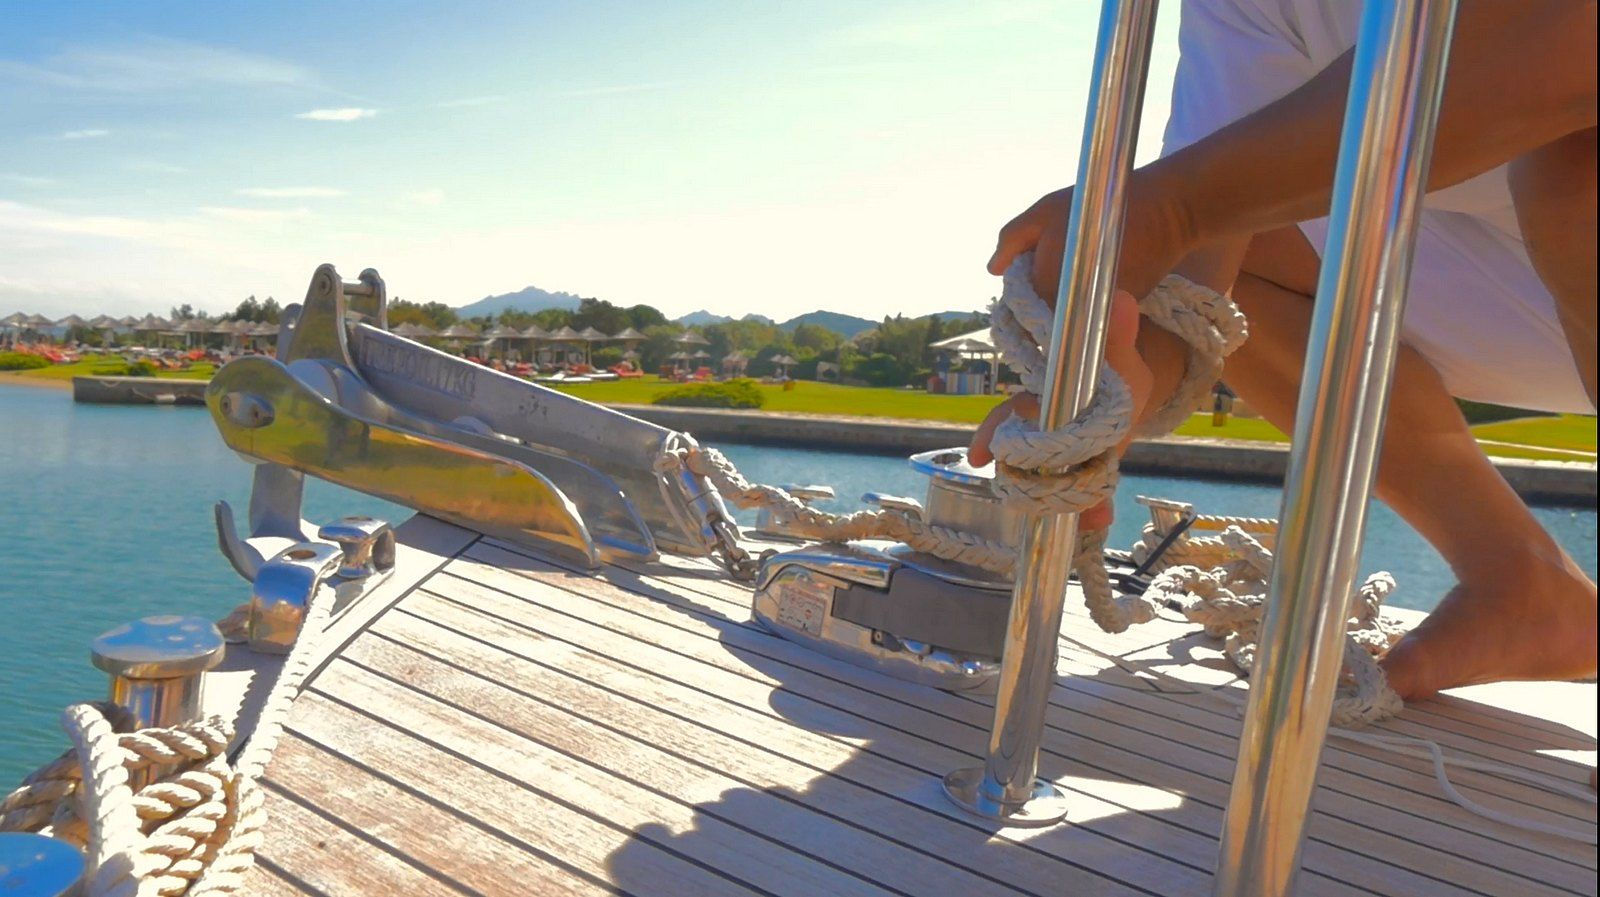 Suite & Boat, Hotel Cala di Volpe, on the boat